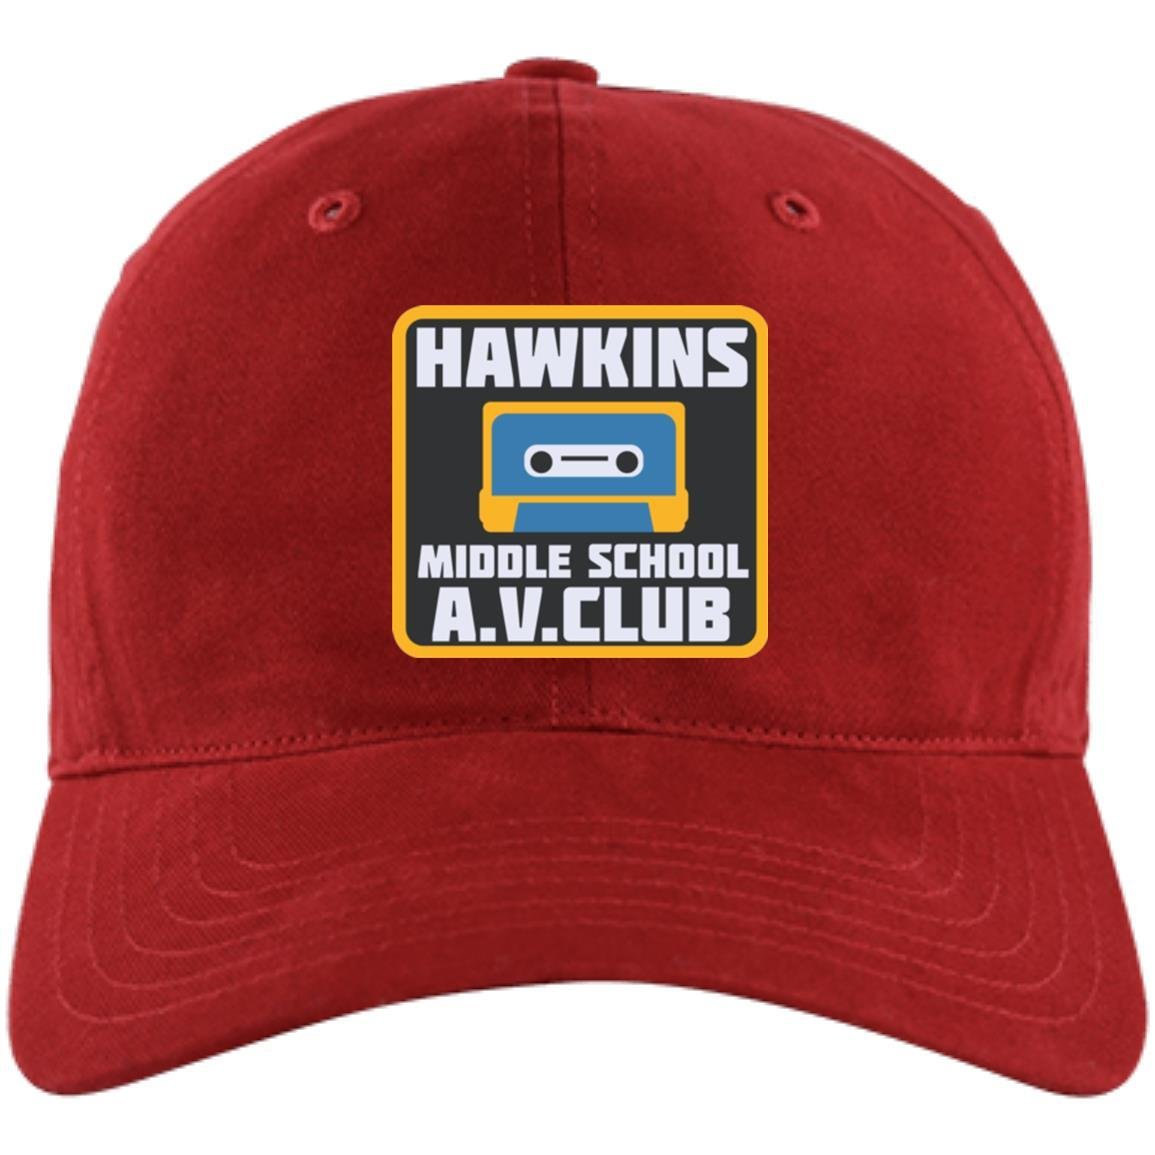 b2ad2c8c810 Amazon.com  Hawkins Middle School AV Club Premium Baseball Hat Cap (Premium  Cap